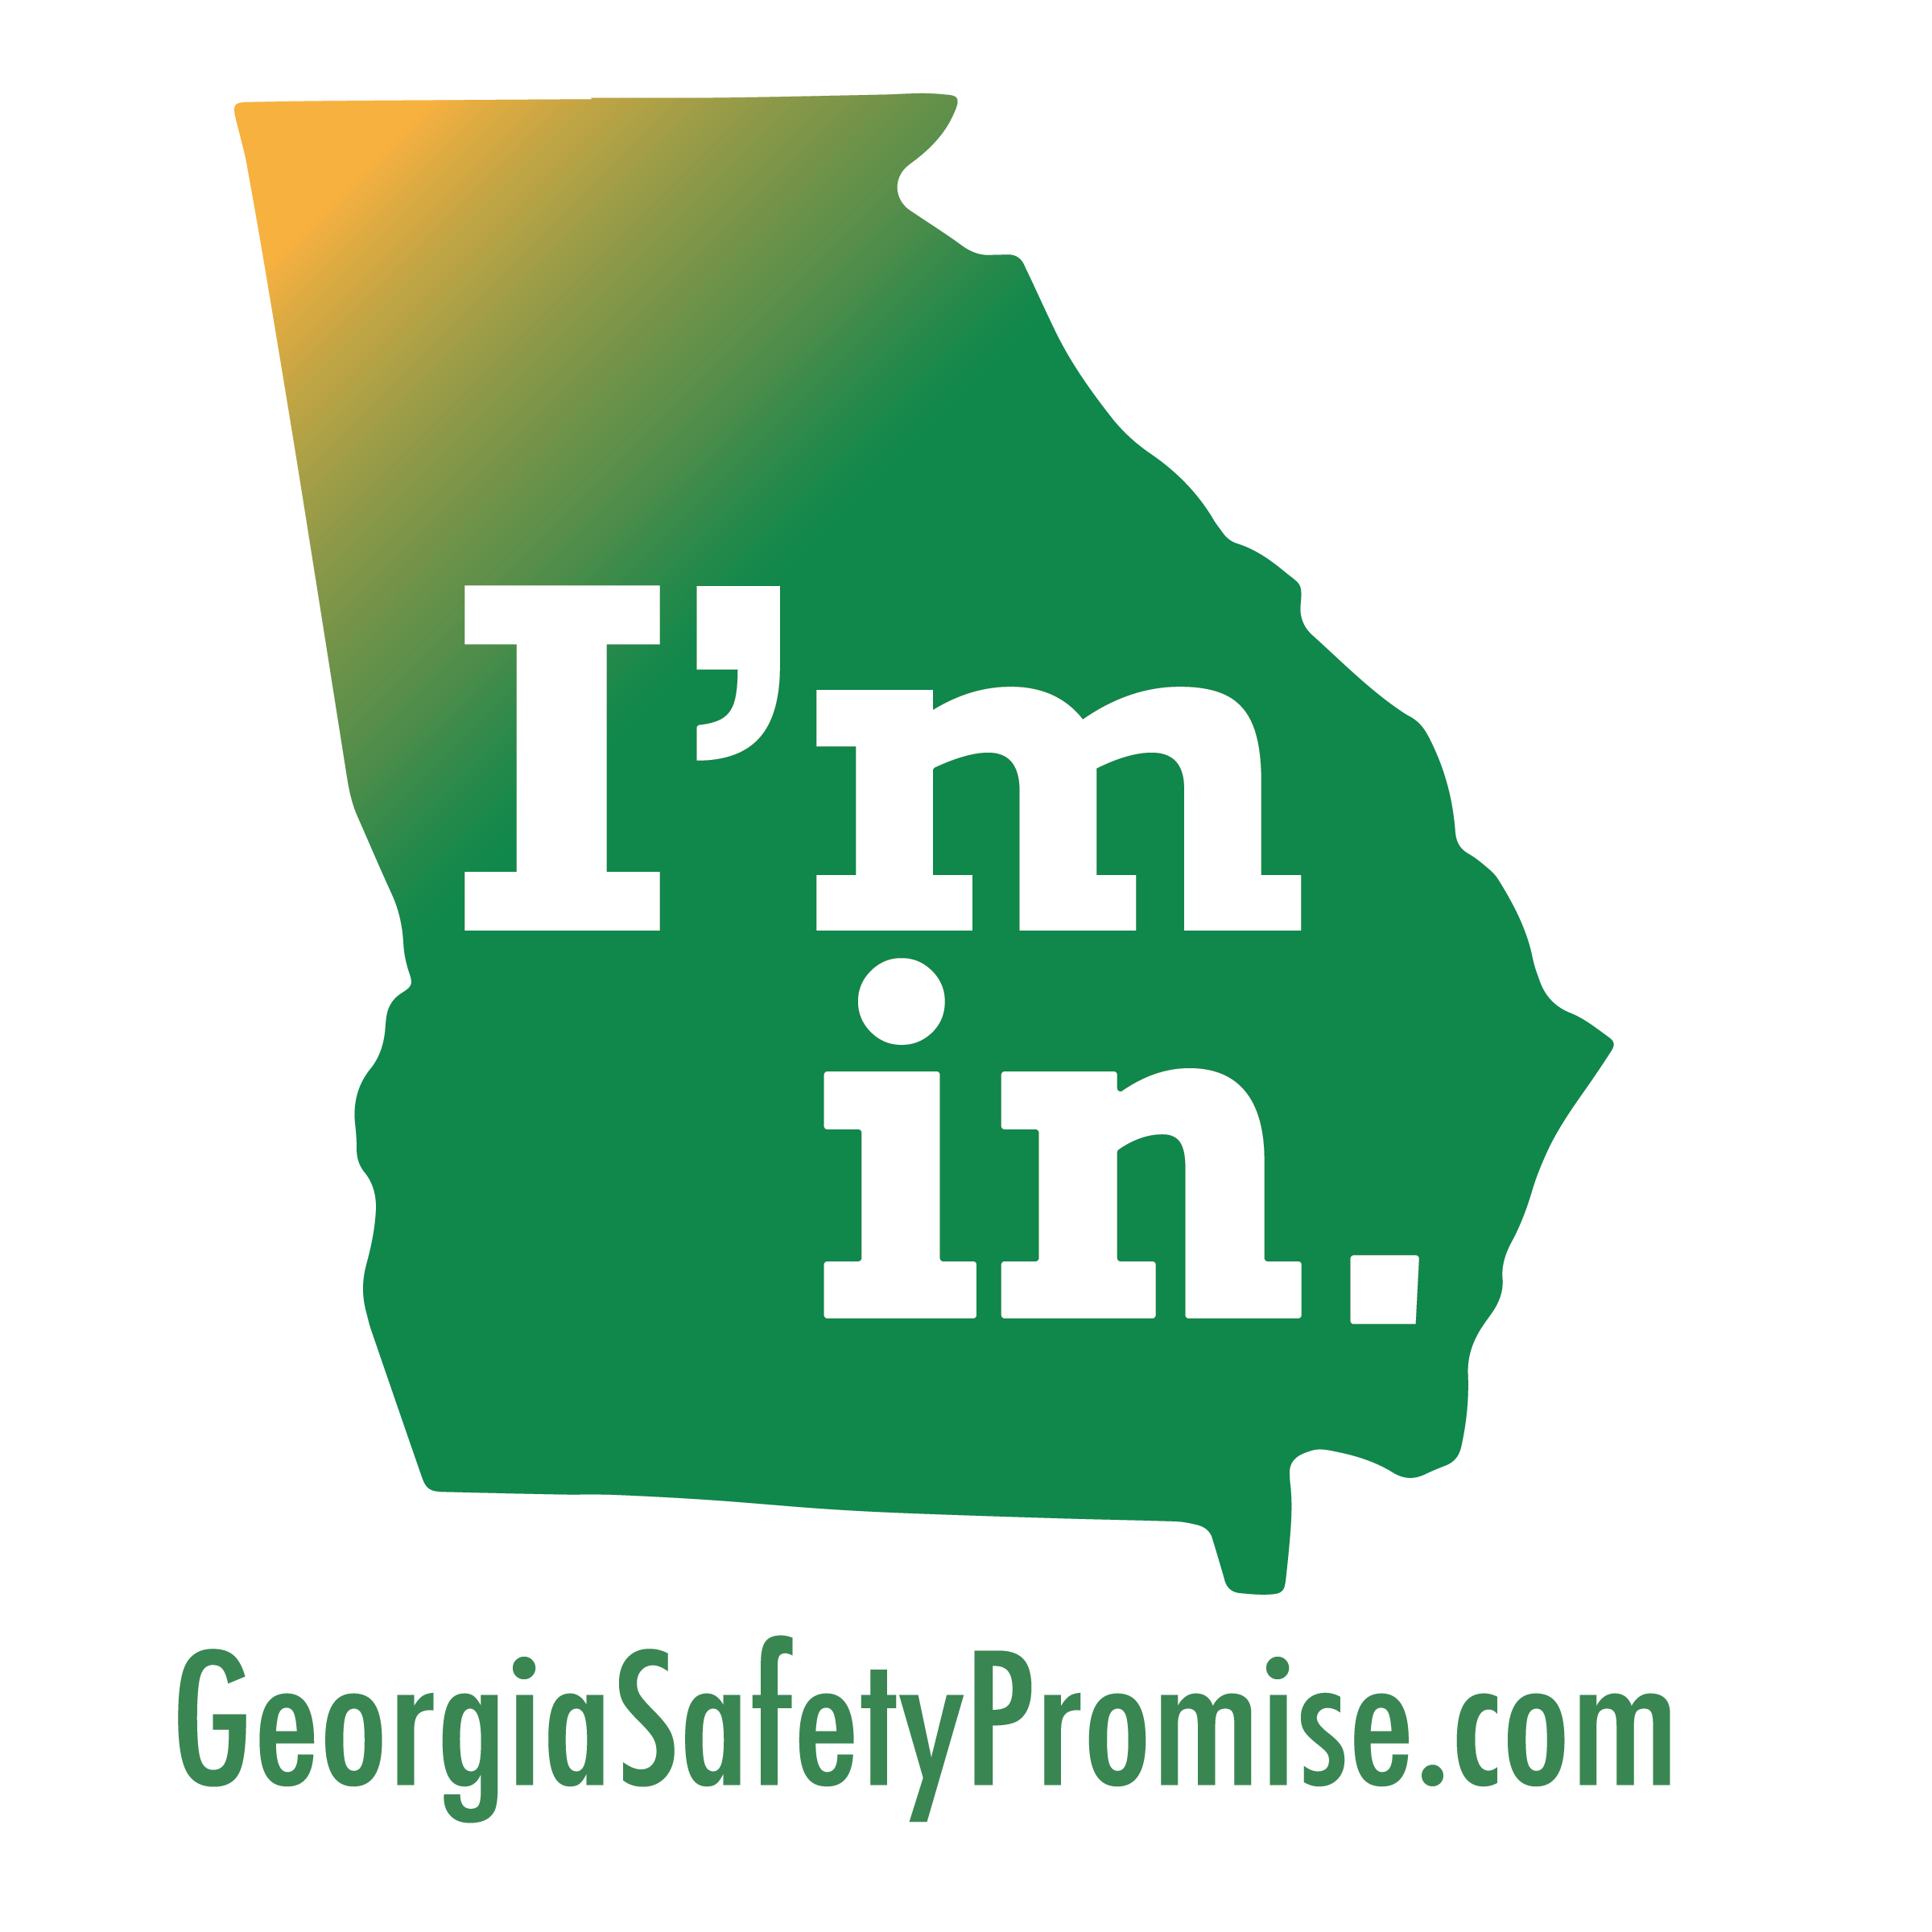 We're in on the Georgia Safety Promise